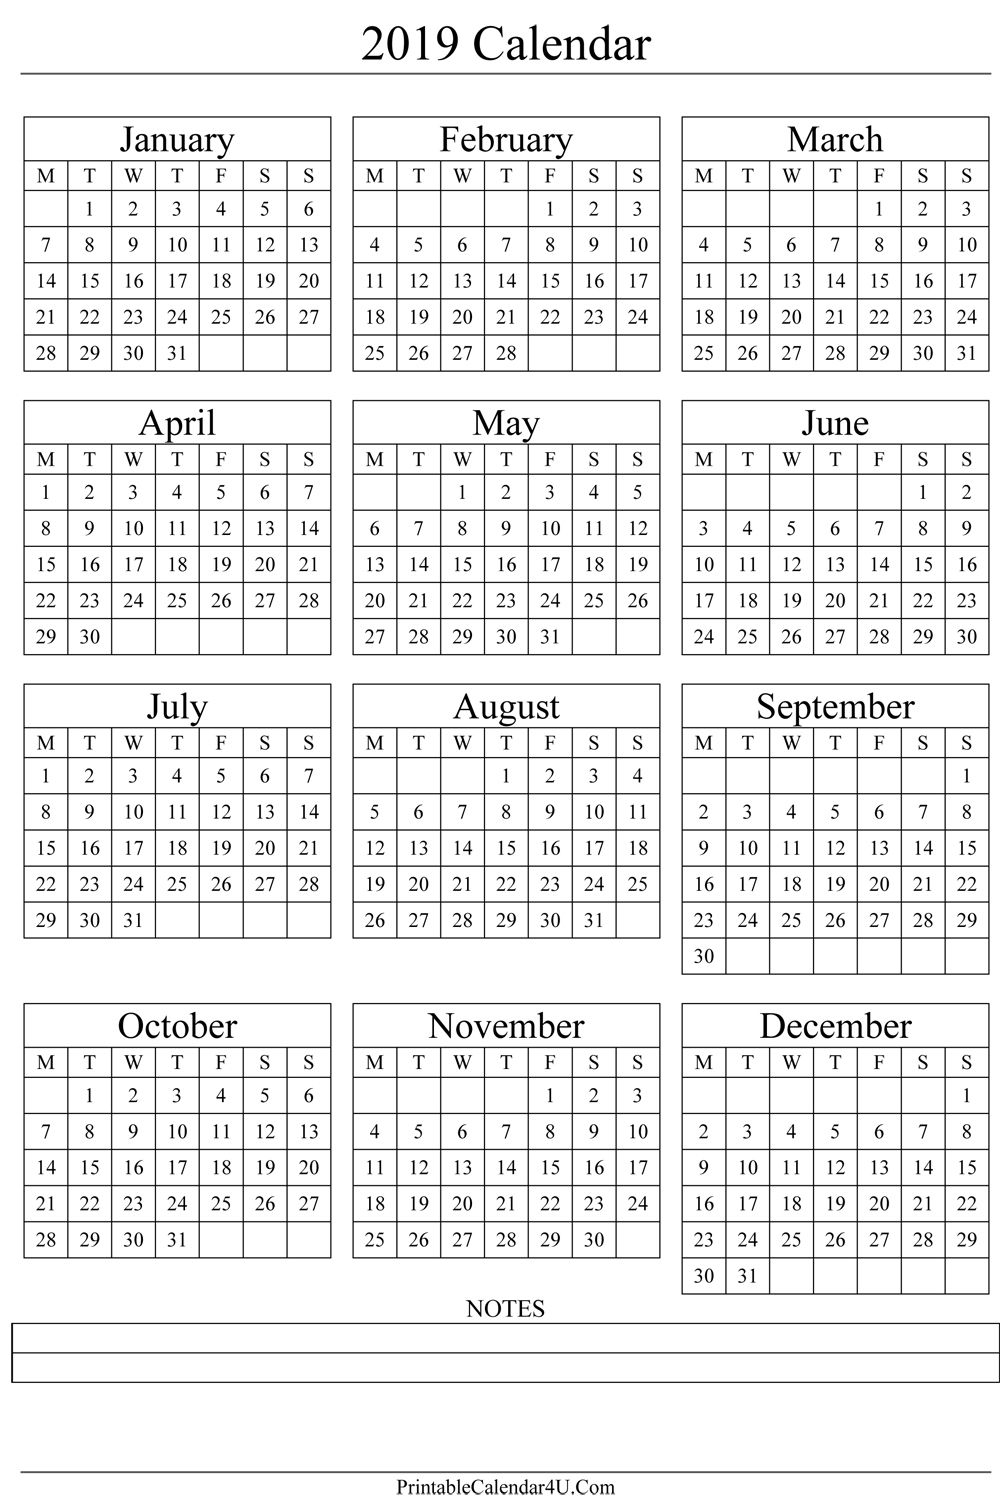 Printable Yearly Calendars 2019